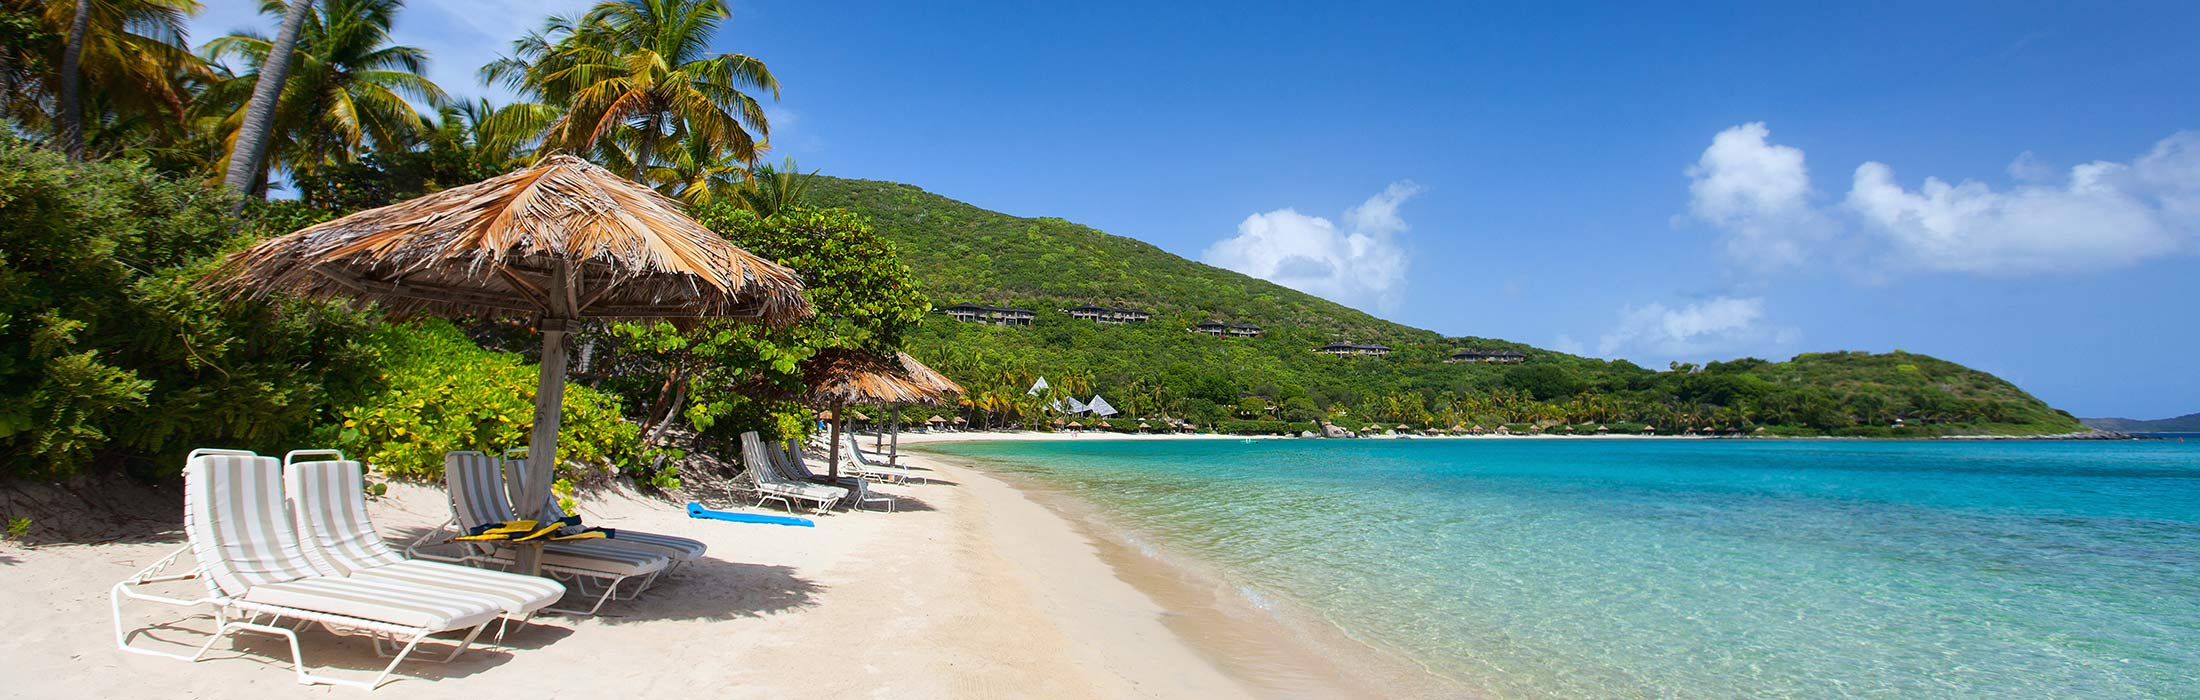 top yacht charter destinations carribean bahamas carribean windward islands main slider 2